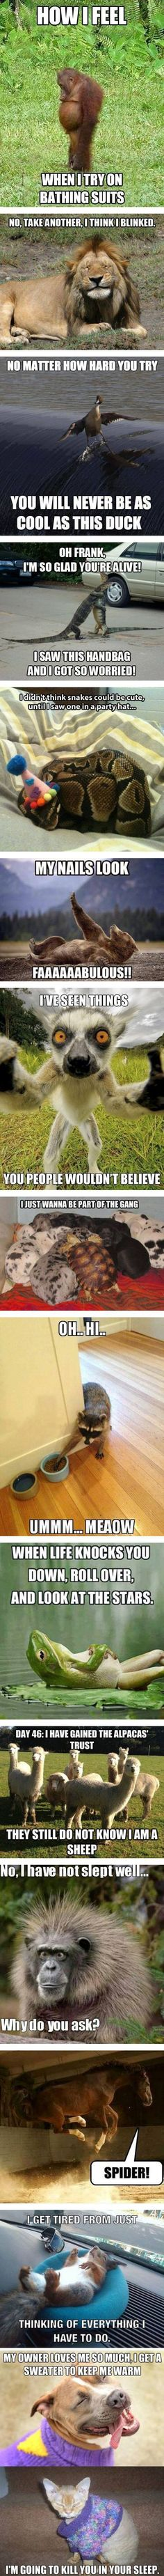 Funny Nailed It. Funny Drunk pictures--Top 35 Funniest Quotes and Funny Photos Funny Animal Memes, Animal Quotes, Cute Funny Animals, Funny Cute, Funny Memes, Funny Sayings, Animal Funnies, Animal Captions, Funny Animals With Captions